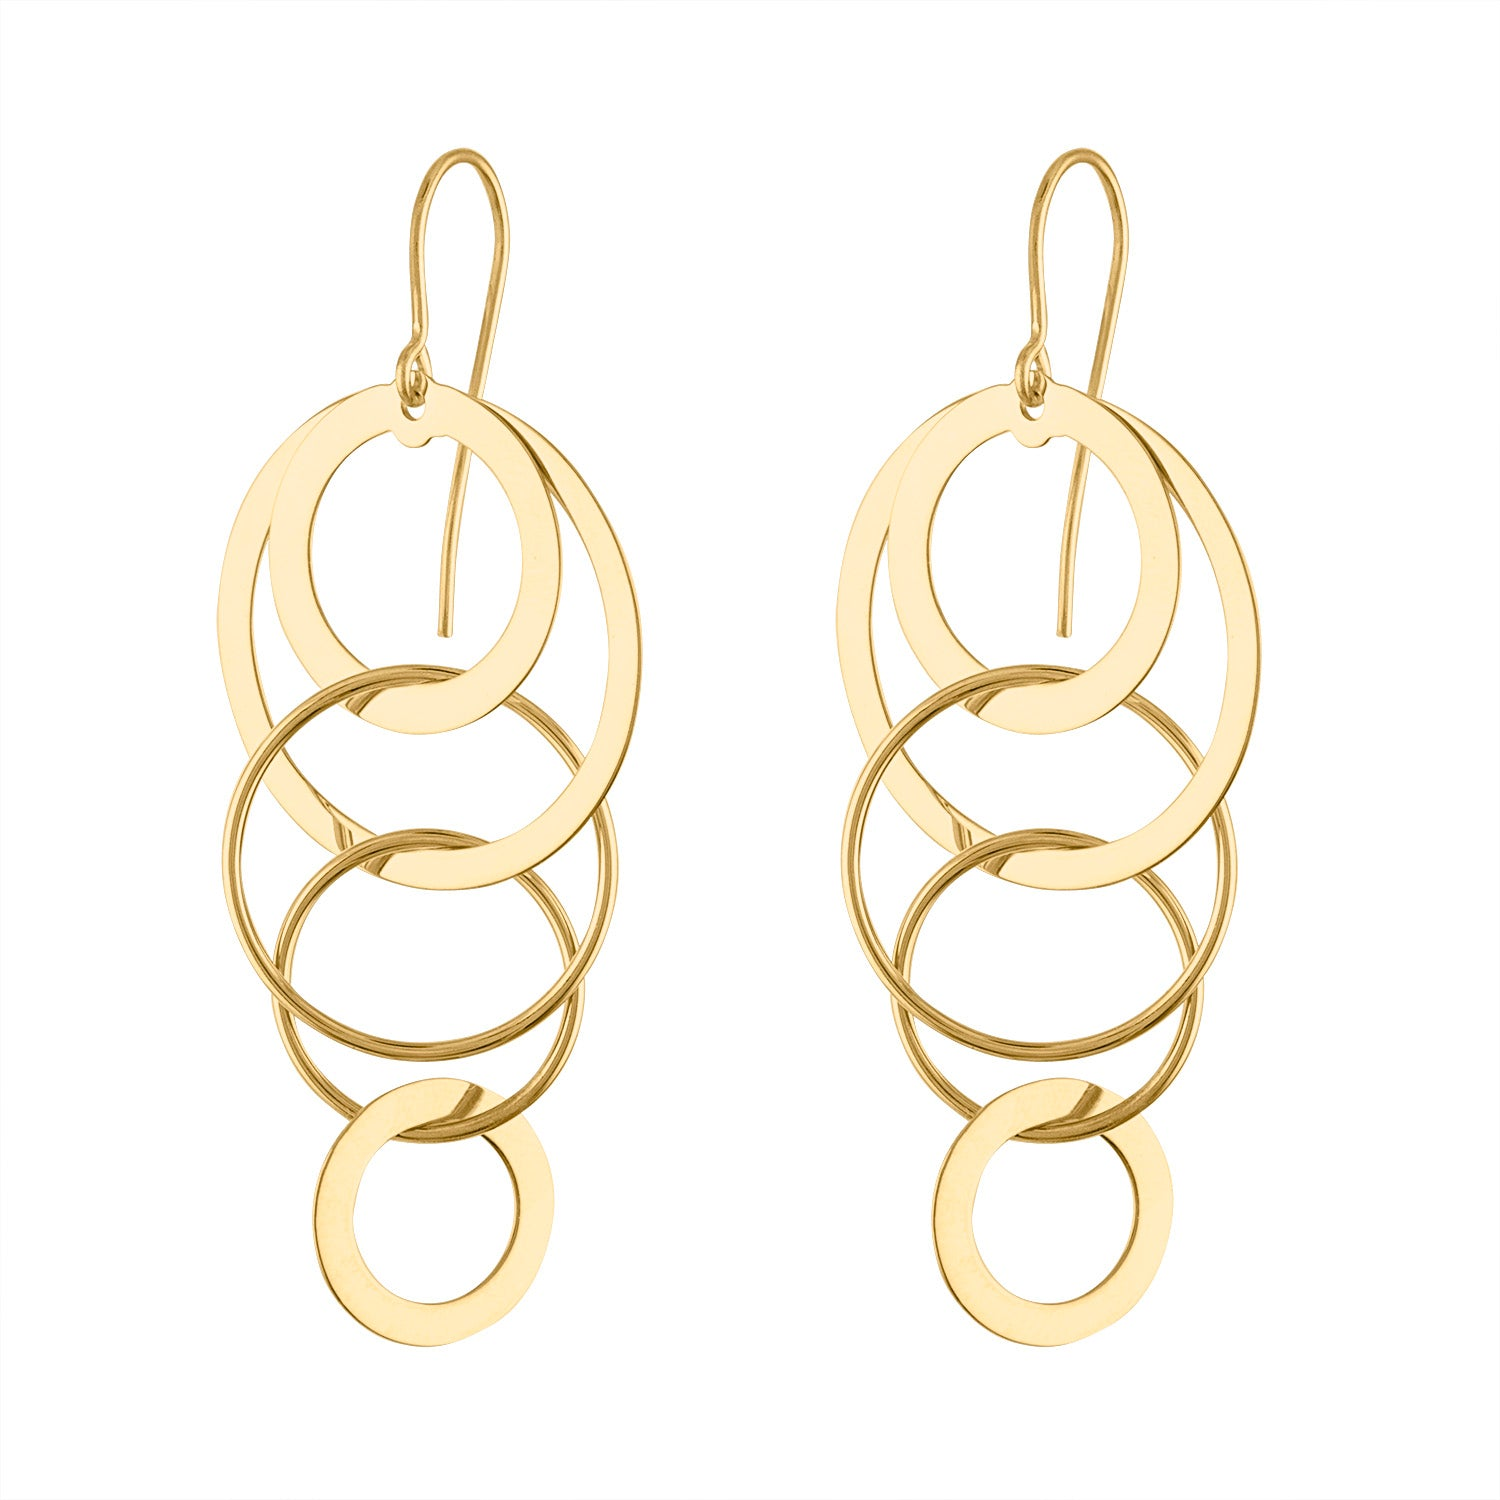 14KT GOLD INTERLOCKING CIRCLES EARRING